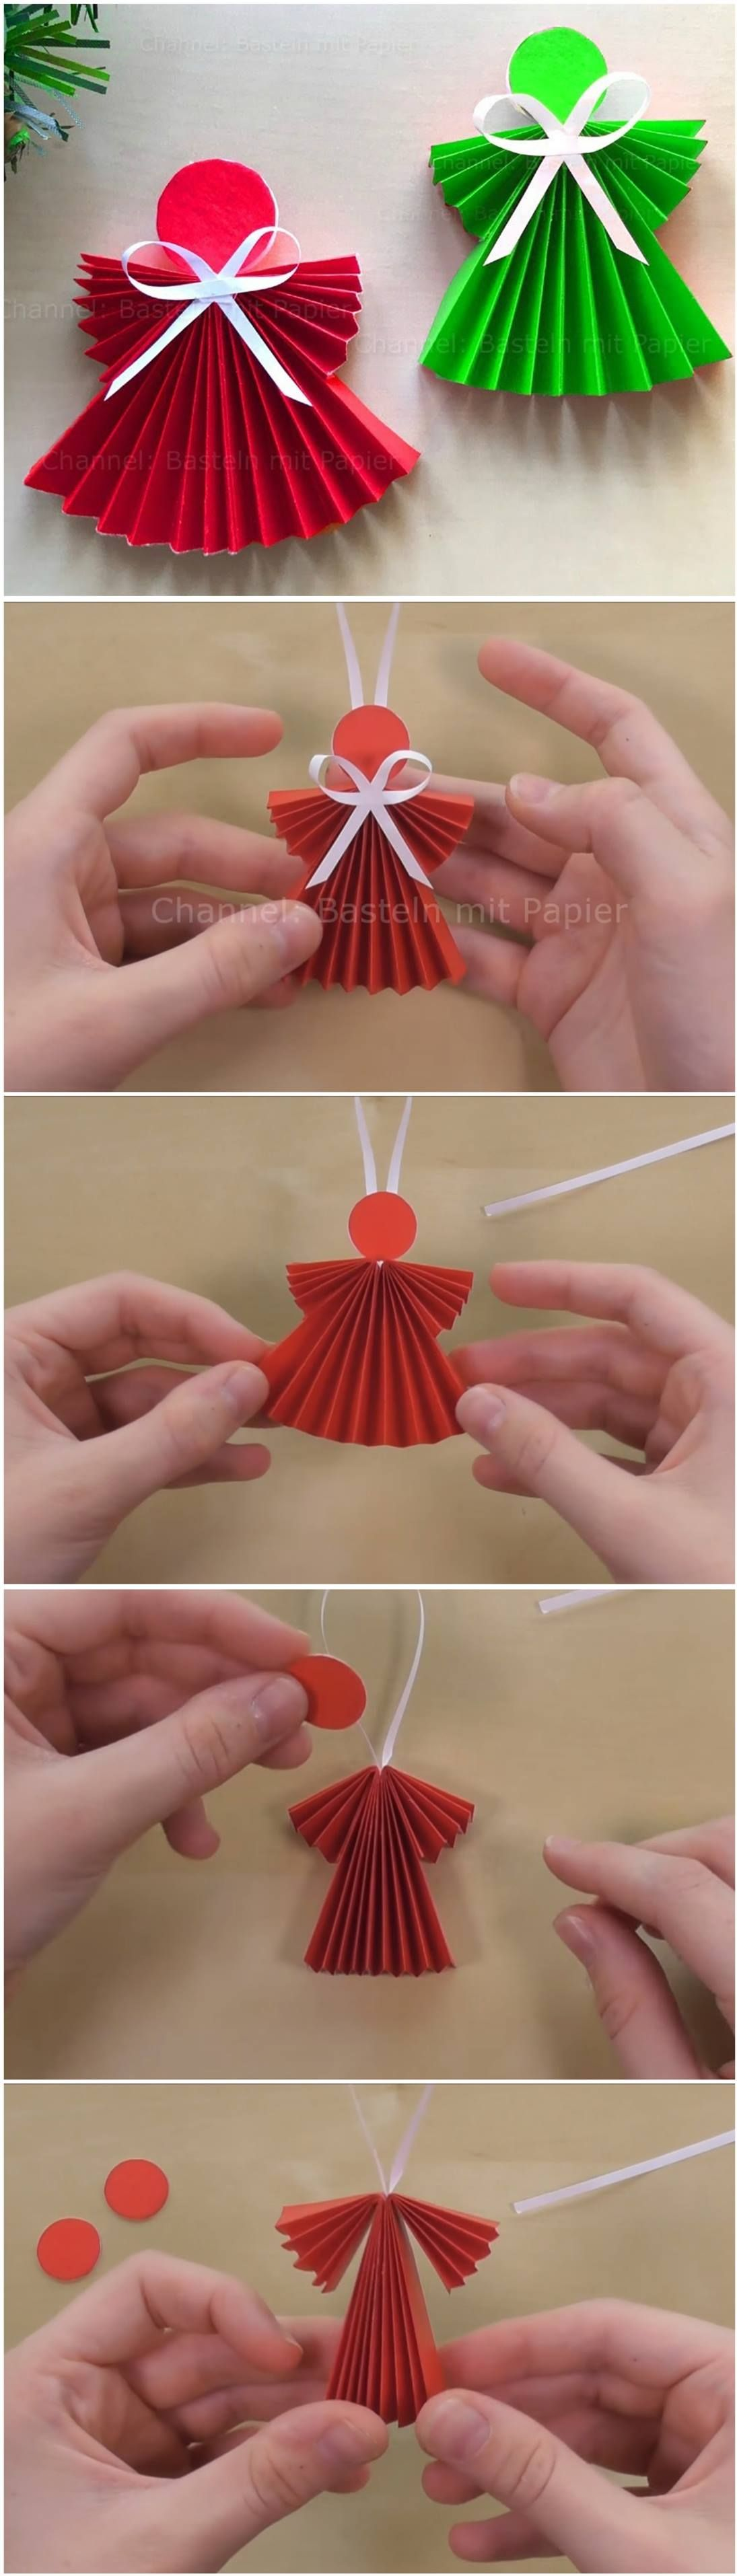 Paper Angels Diy Tutorial Neesly With Images